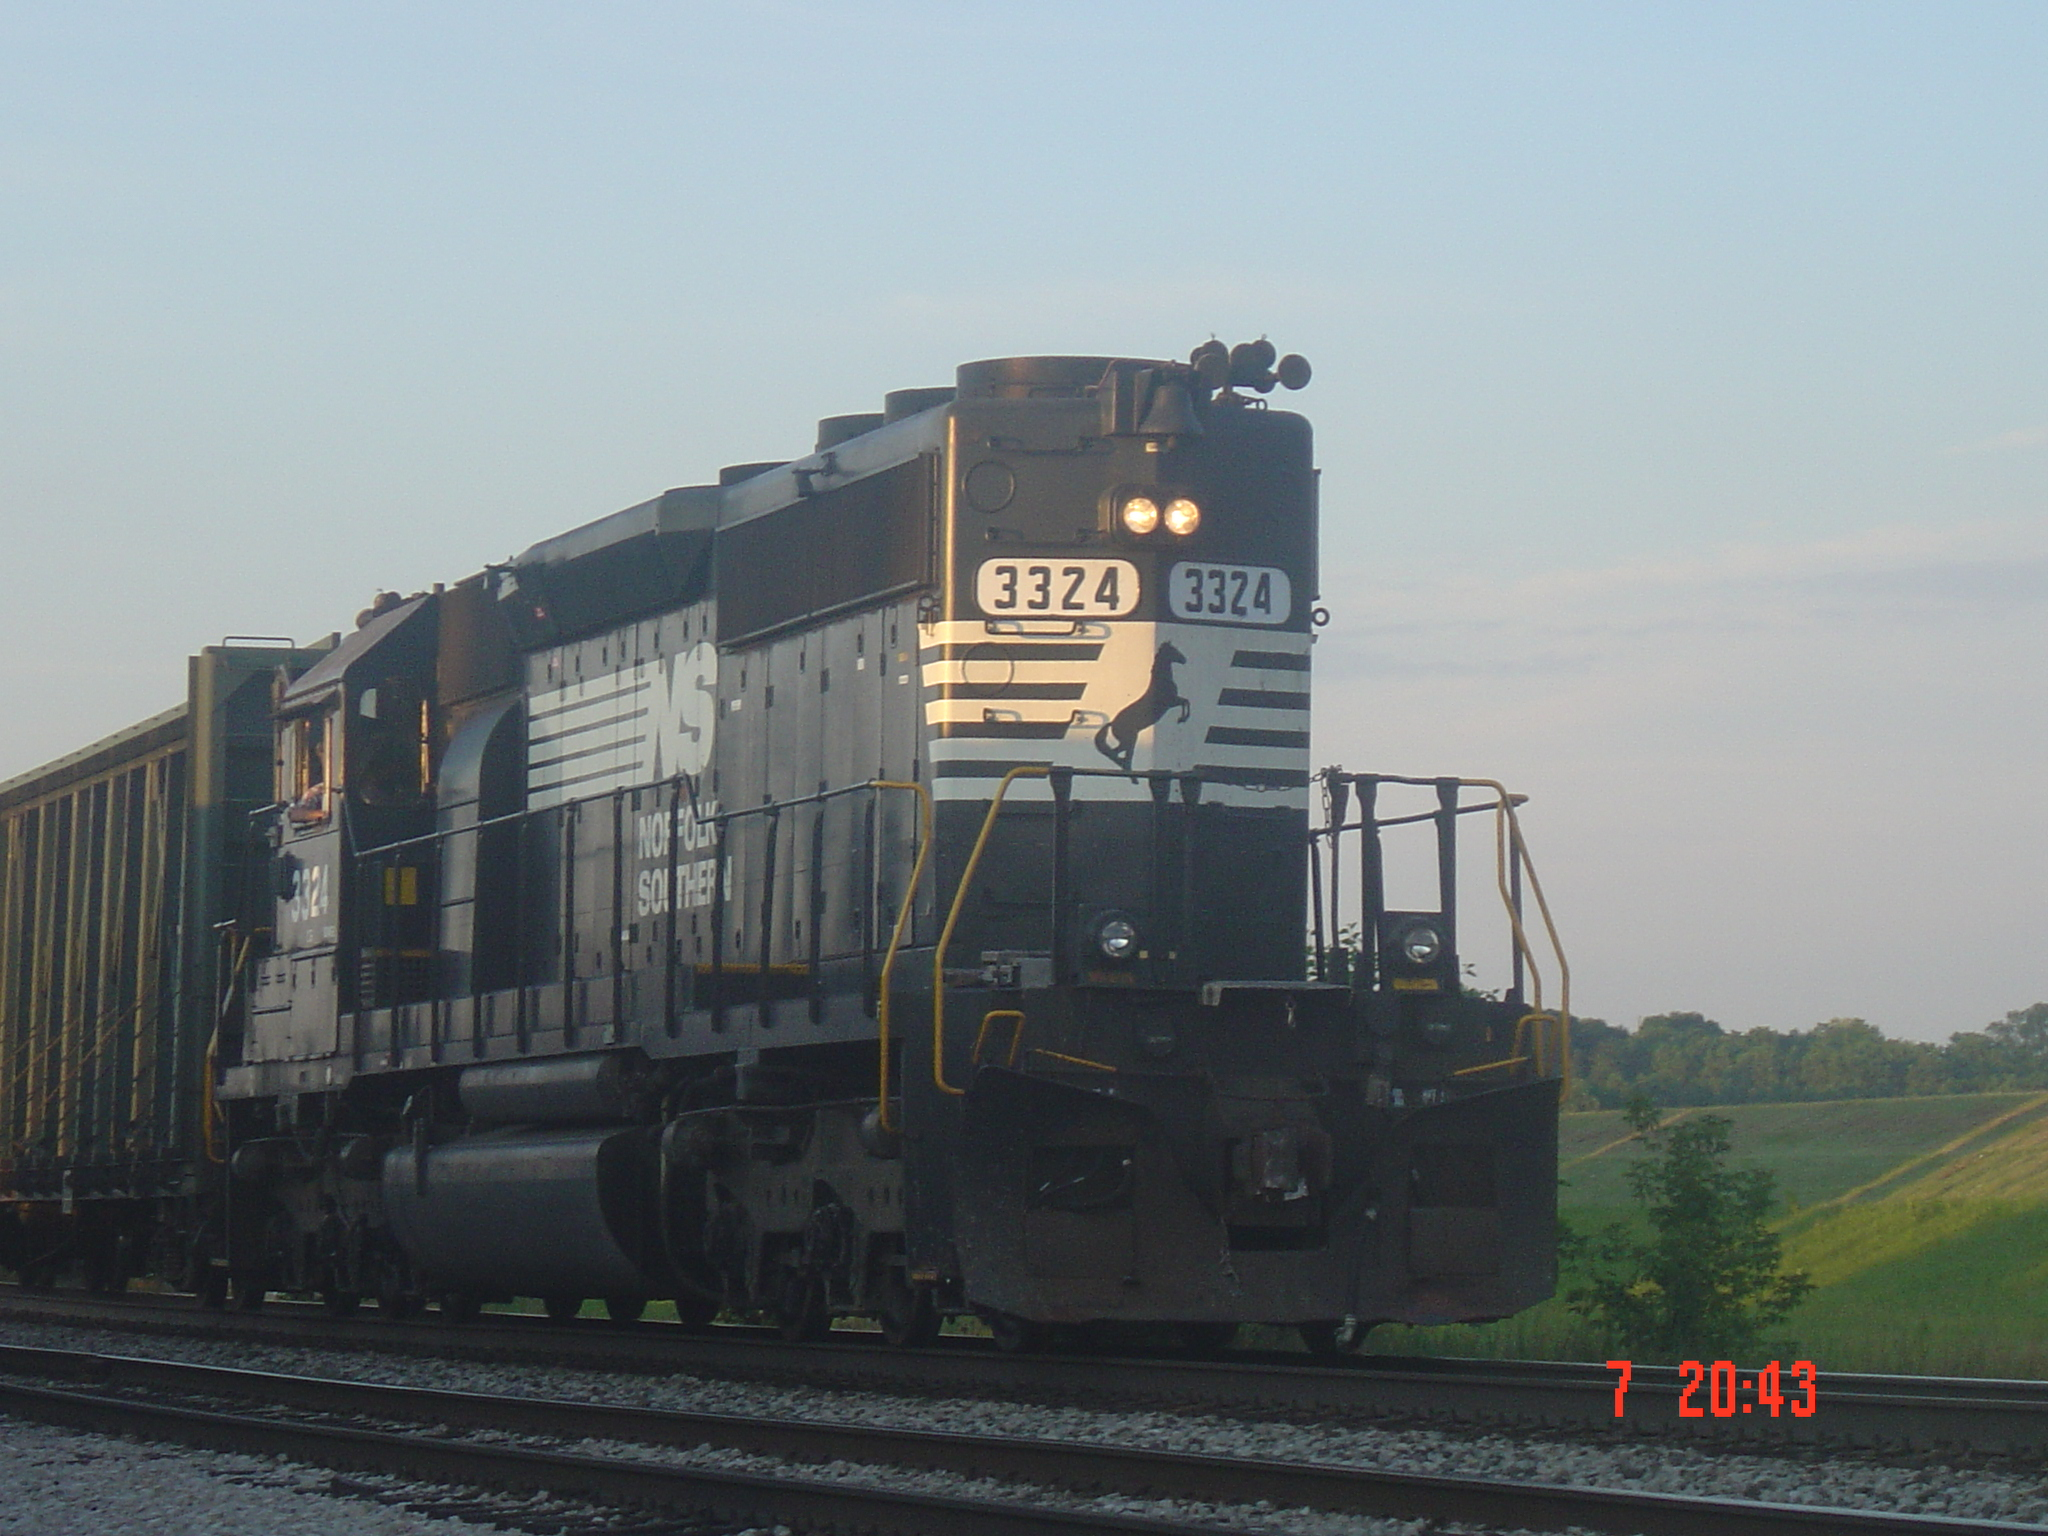 NS 3324 on the B31